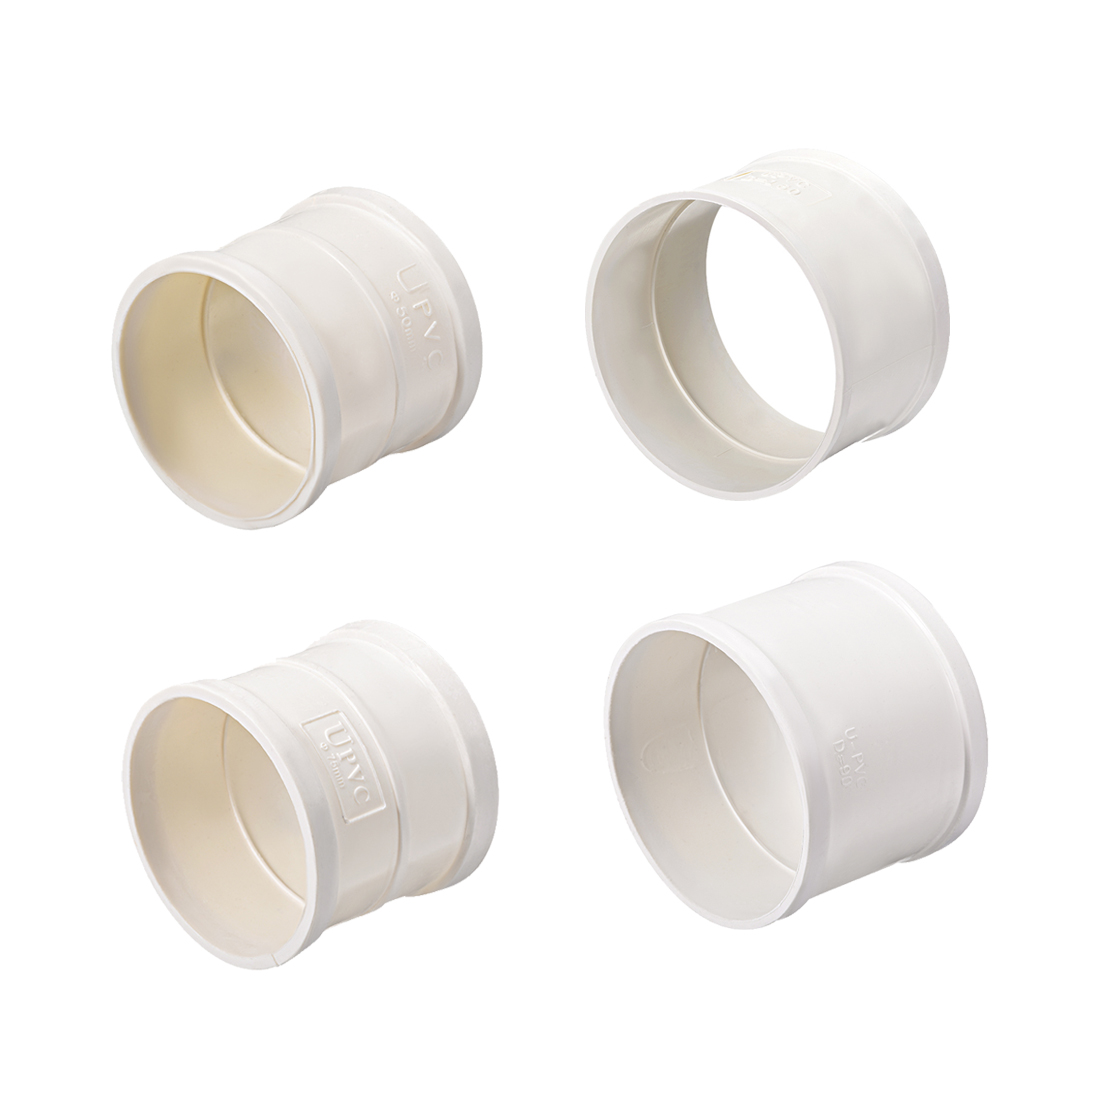 Uxcell 1-10pcs PVC Pipe Fitting Coupling Schedule 40 White 50mm 75mm 90mm 110mm 160mm Socket For Connection